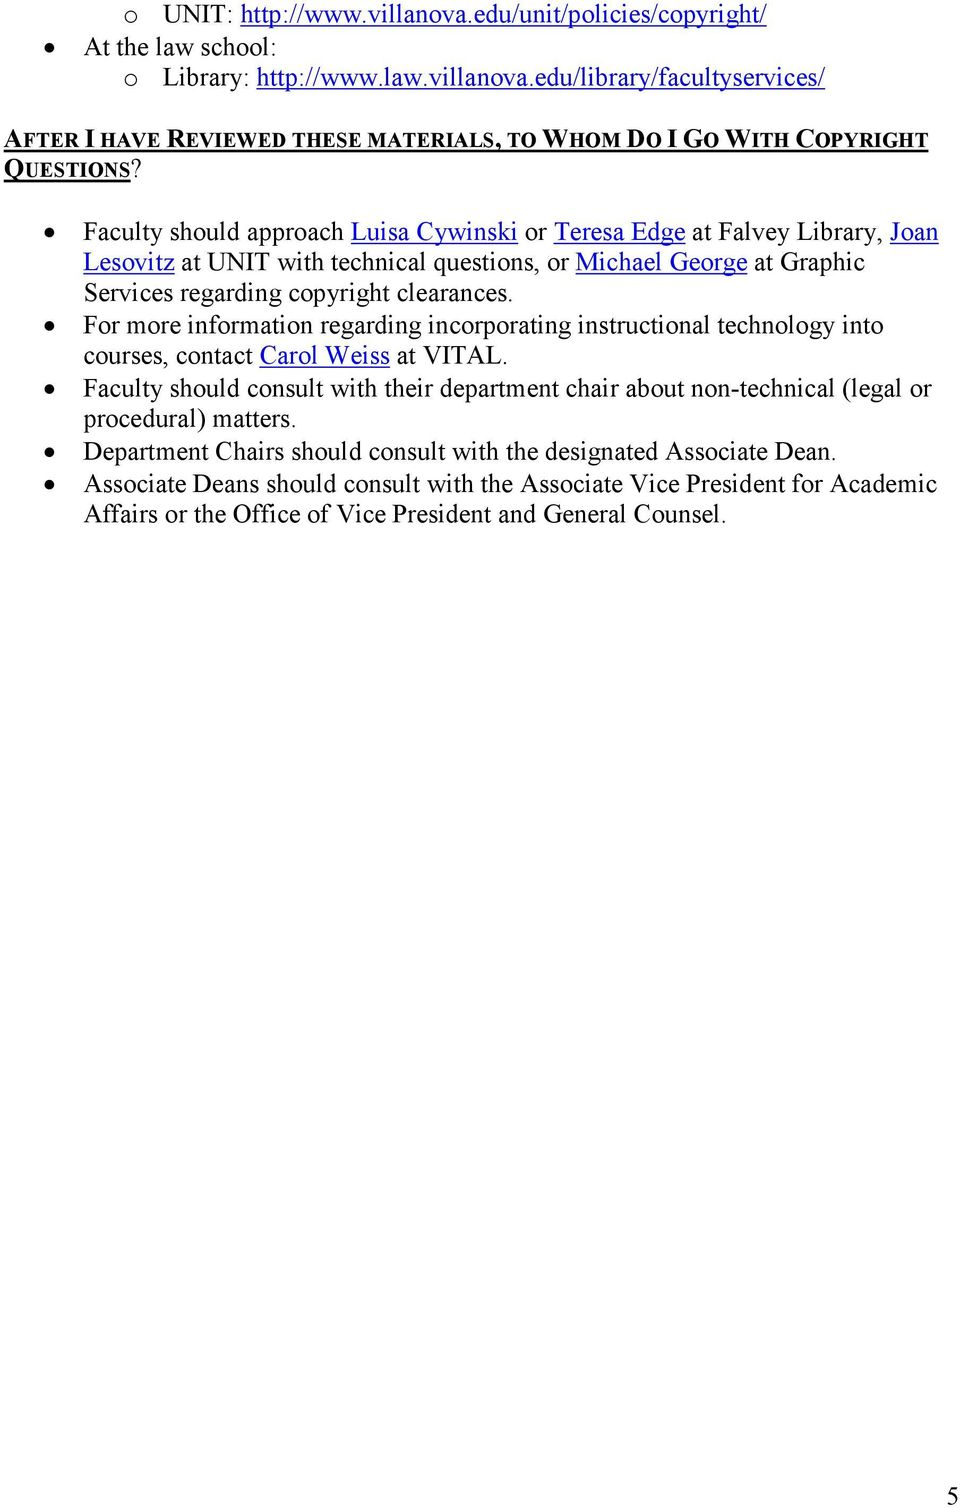 For more information regarding incorporating instructional technology into courses, contact Carol Weiss at VITAL.